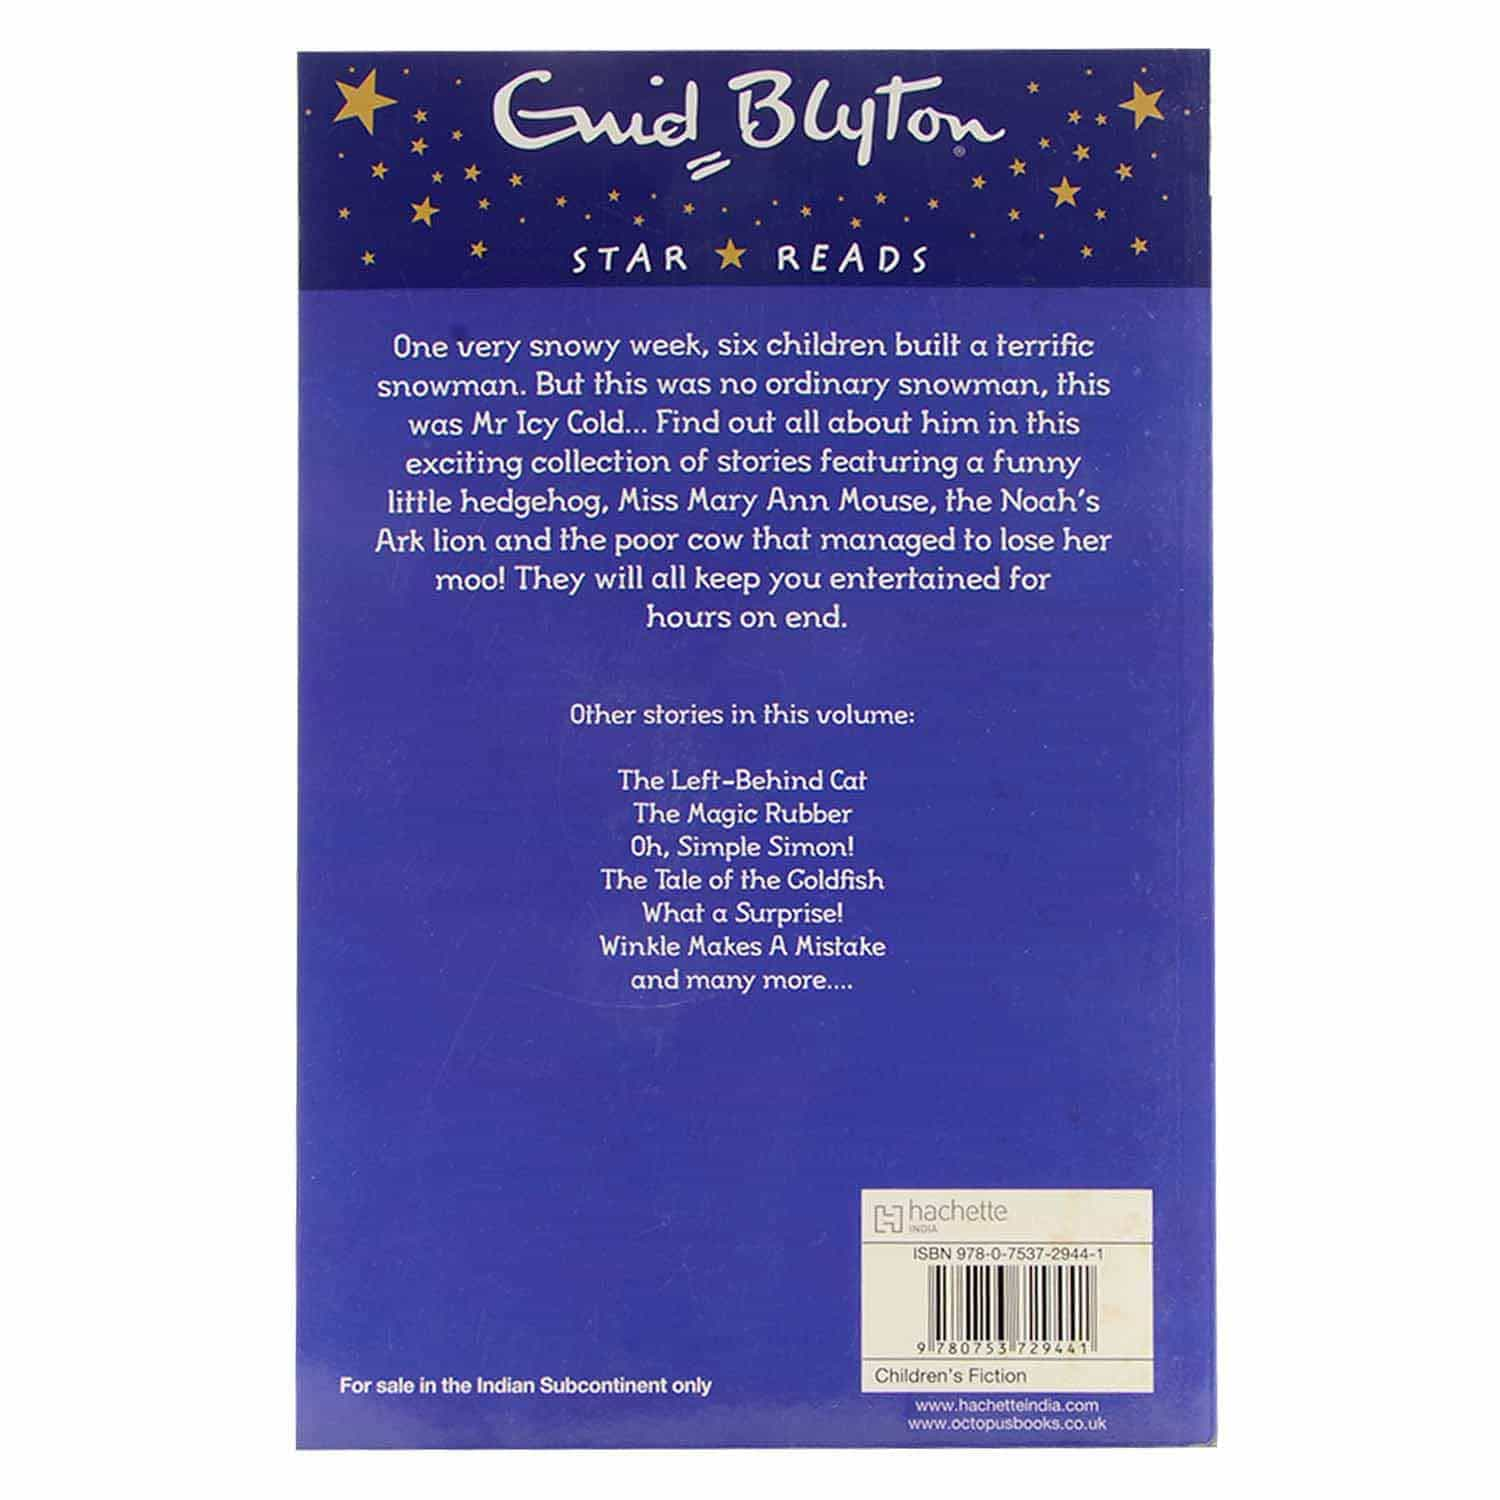 Enid Blyton -  Mr. Icy Cold and Other Stories